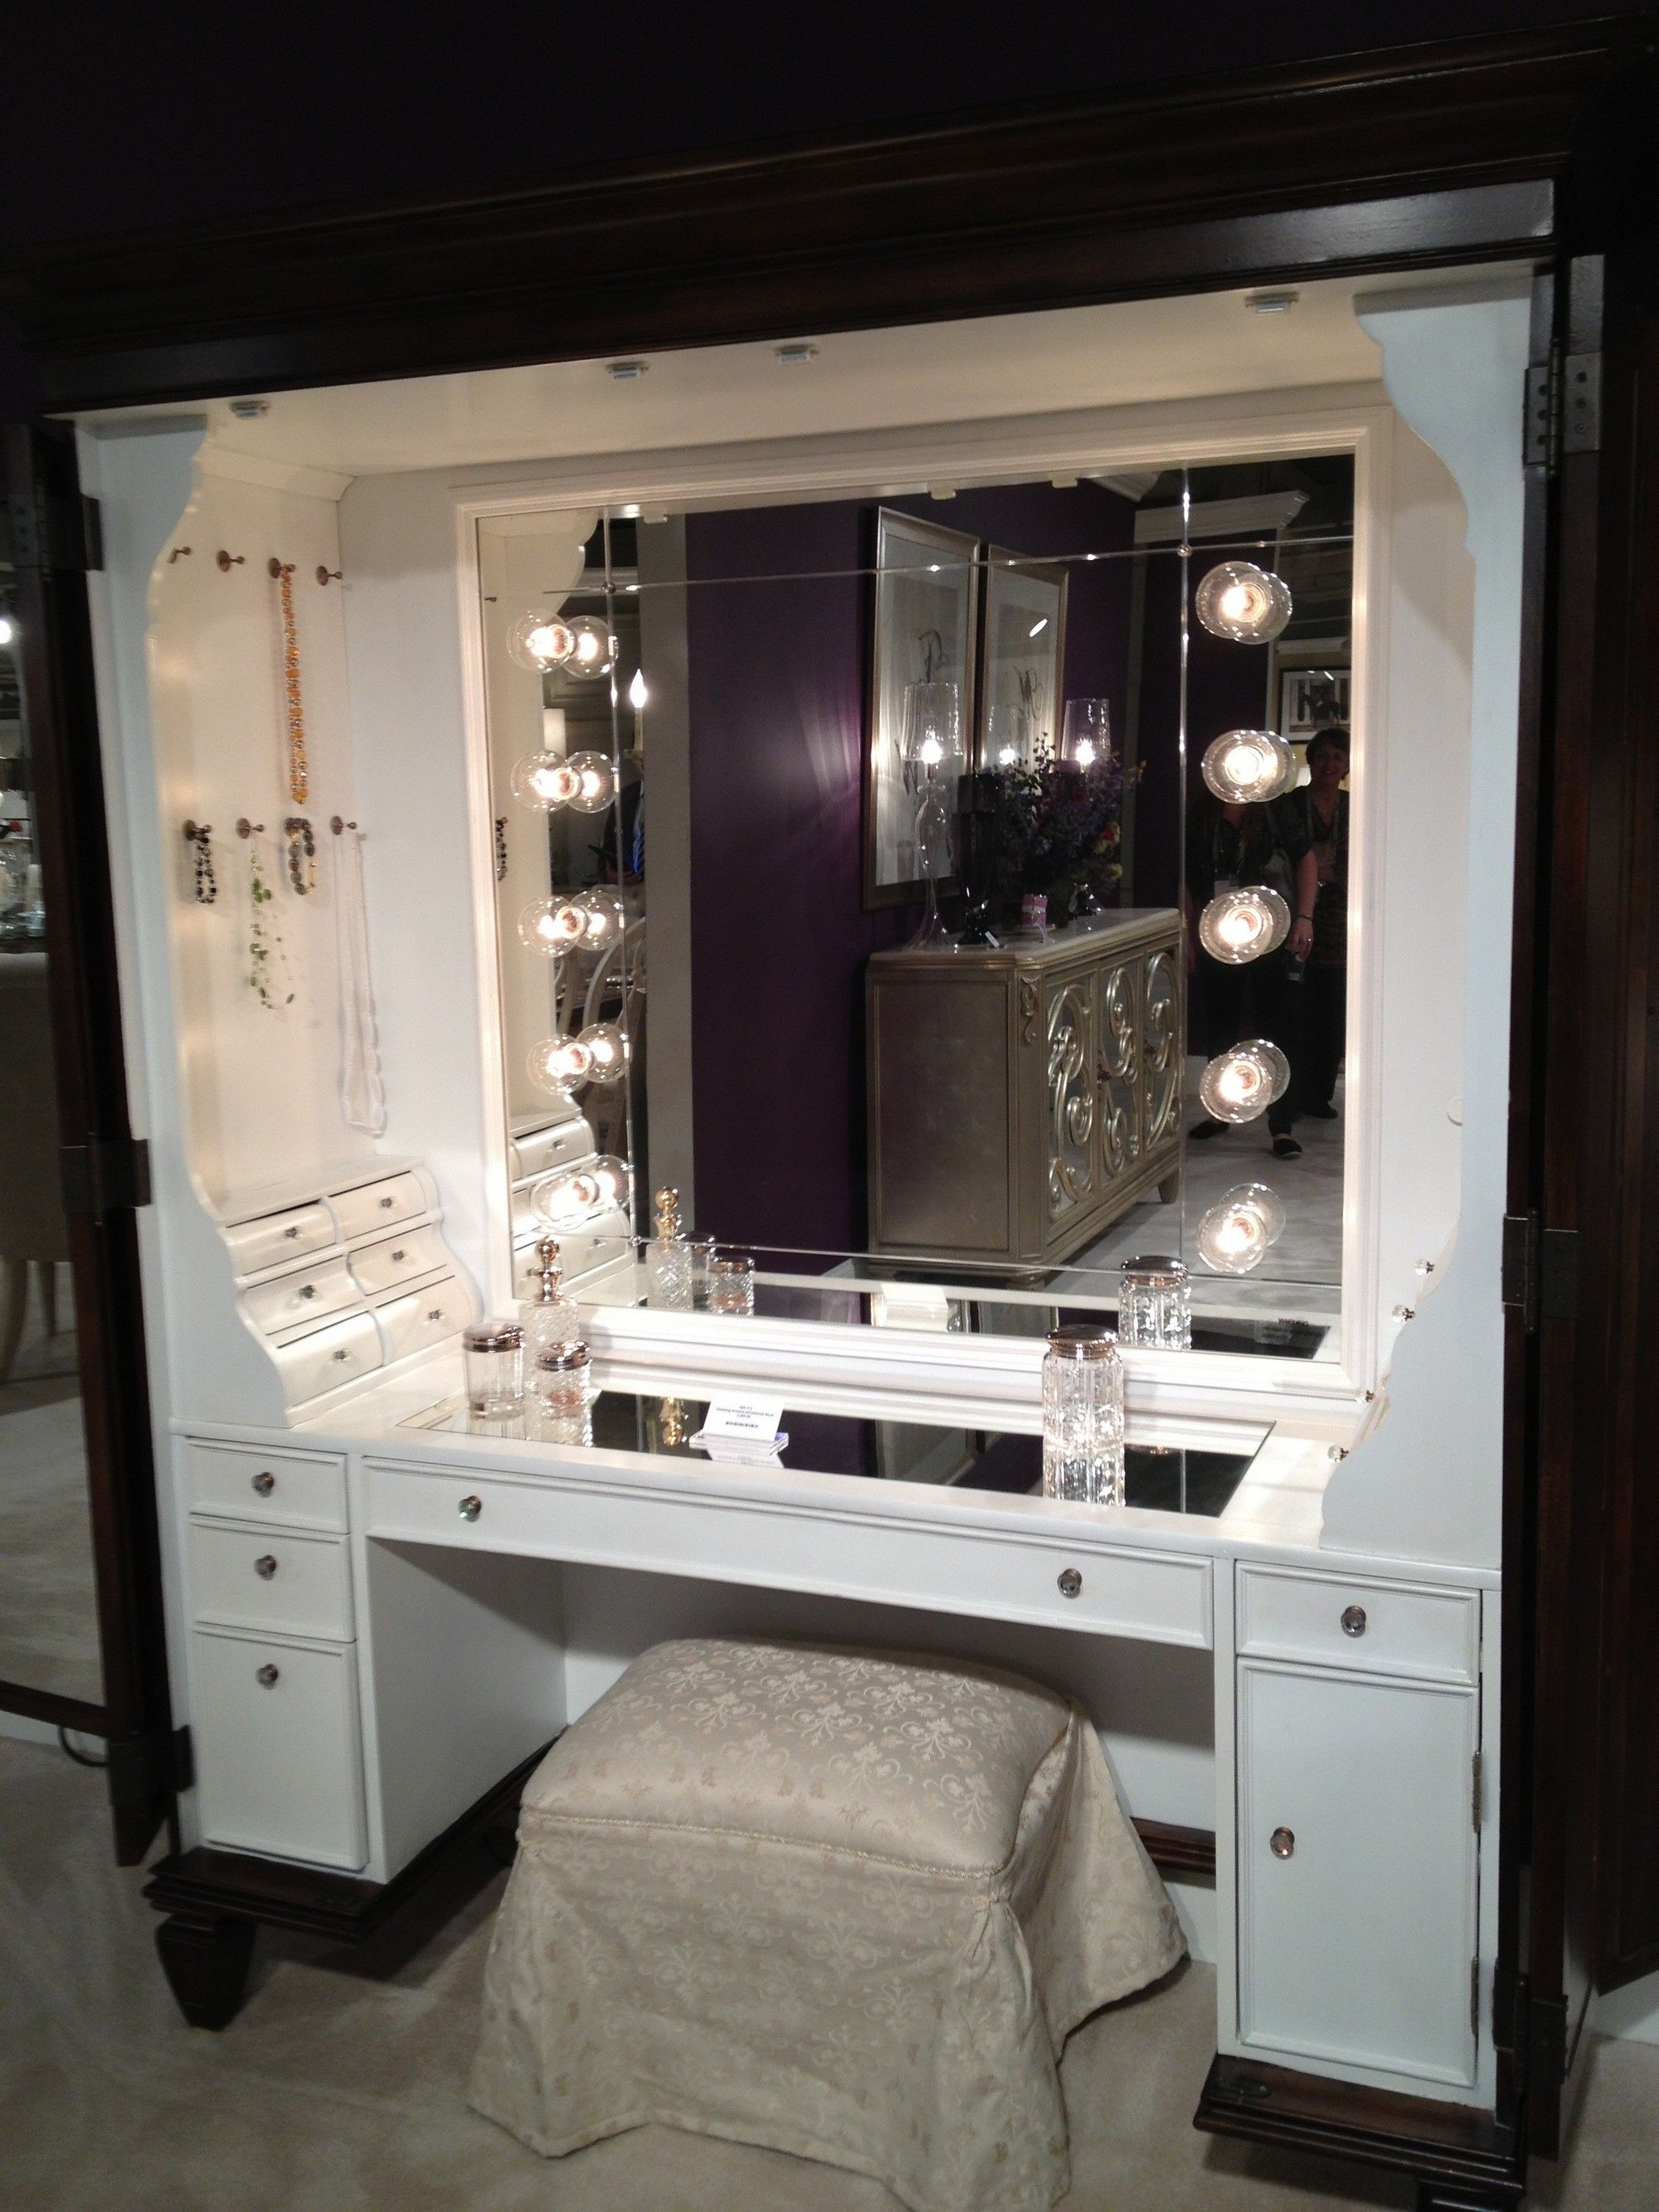 big vanity Furniture  Black Makeup Table With Lighted Mirror And Small  Fabric Bench  Show Perfect Beauty in Maximum Way by Using Makeup Vanity  Table with. Furniture  Black Makeup Table With Lighted Mirror And Small Fabric